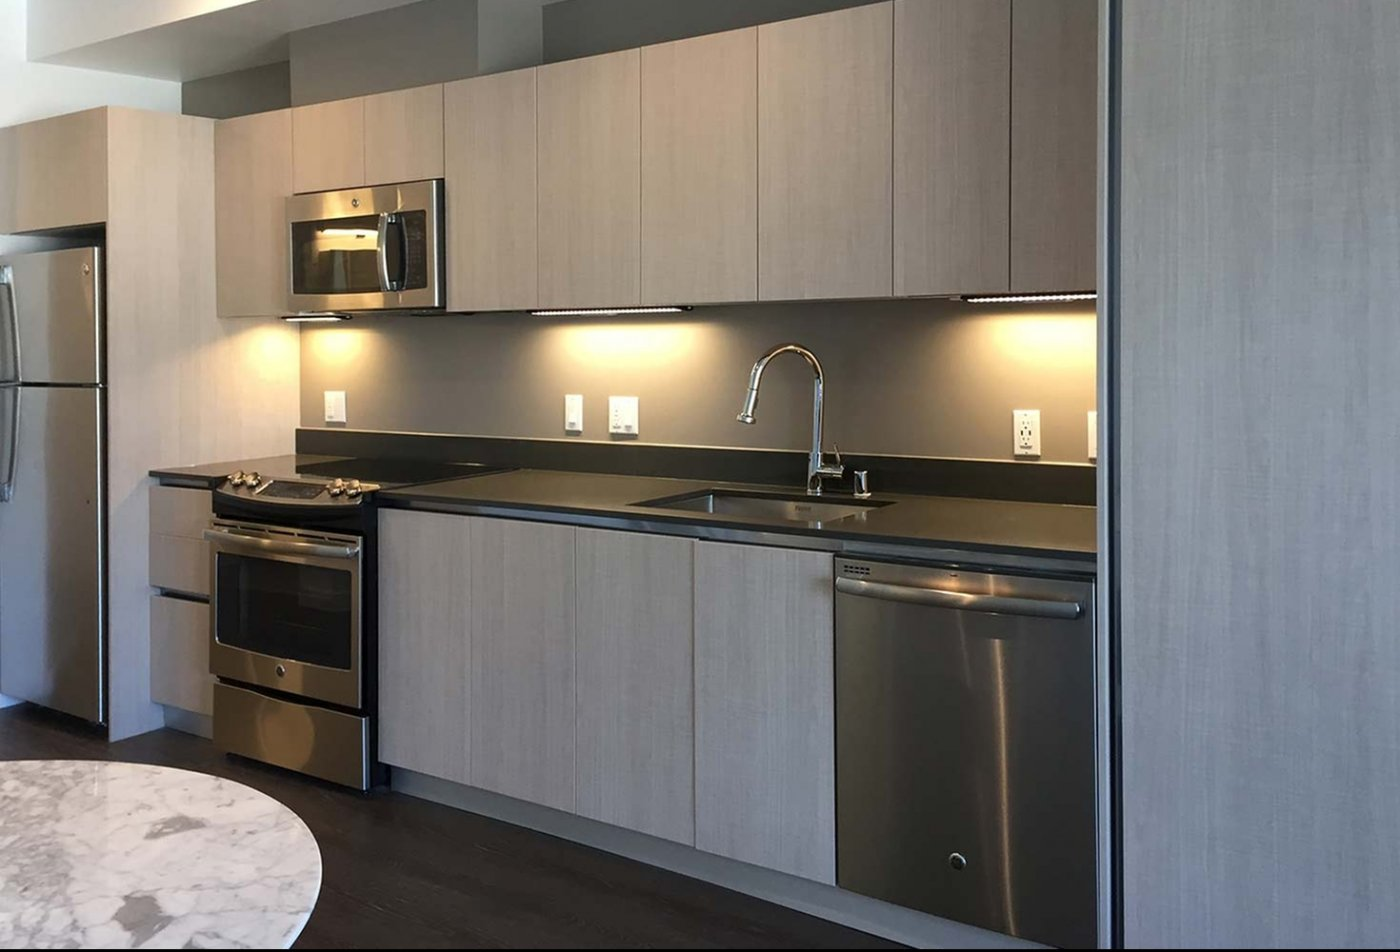 State-of-the-Art Kitchen   Hollywood CA Apartment Homes   5800 Harold